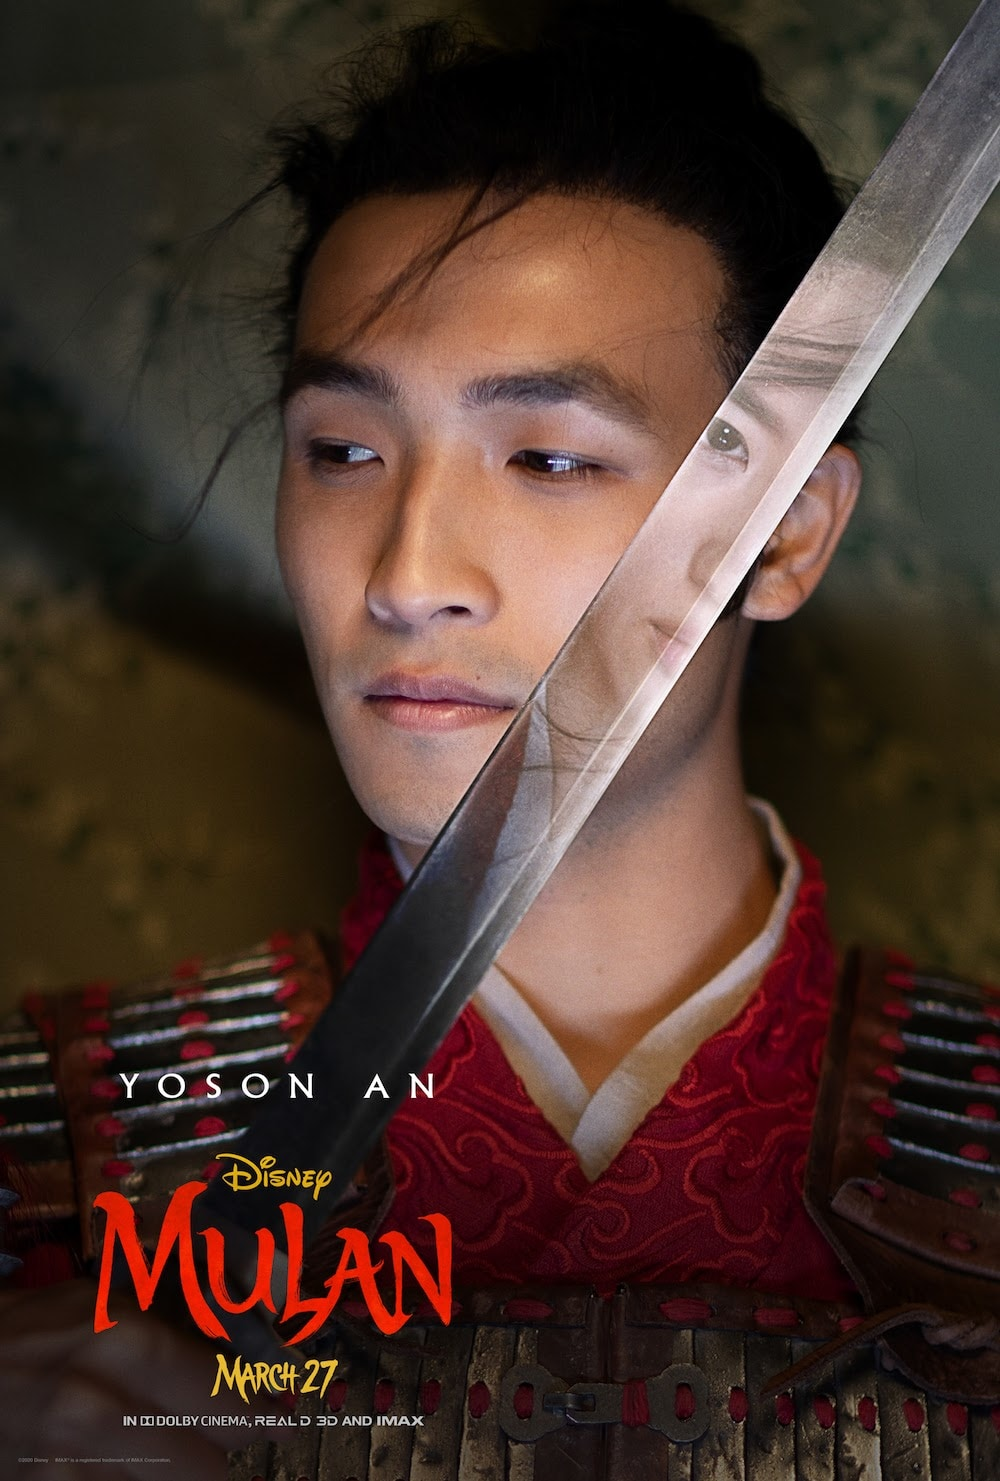 Interview Mulan Costar Yoson An Discusses His Role As Chen Honghui And Living With Donnie Yen Laughingplace Com